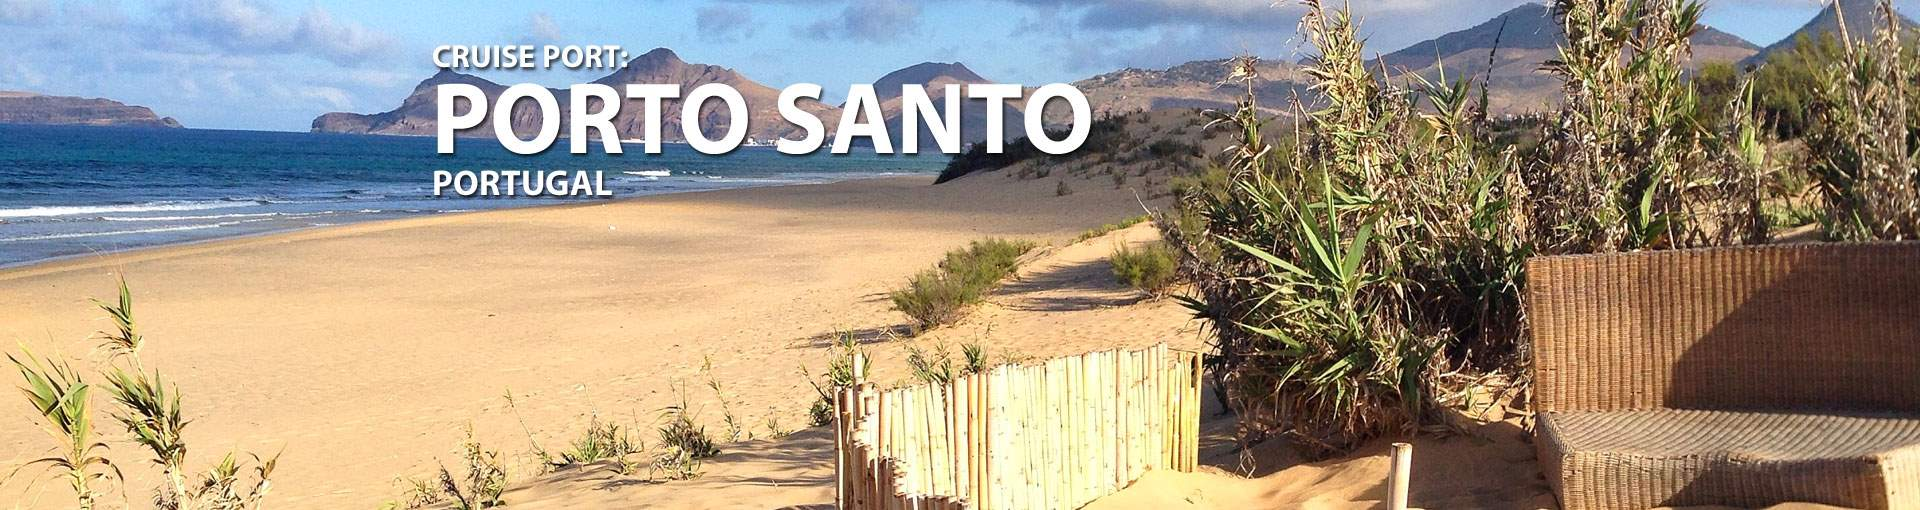 Cruises to Porto Santo, Portugal